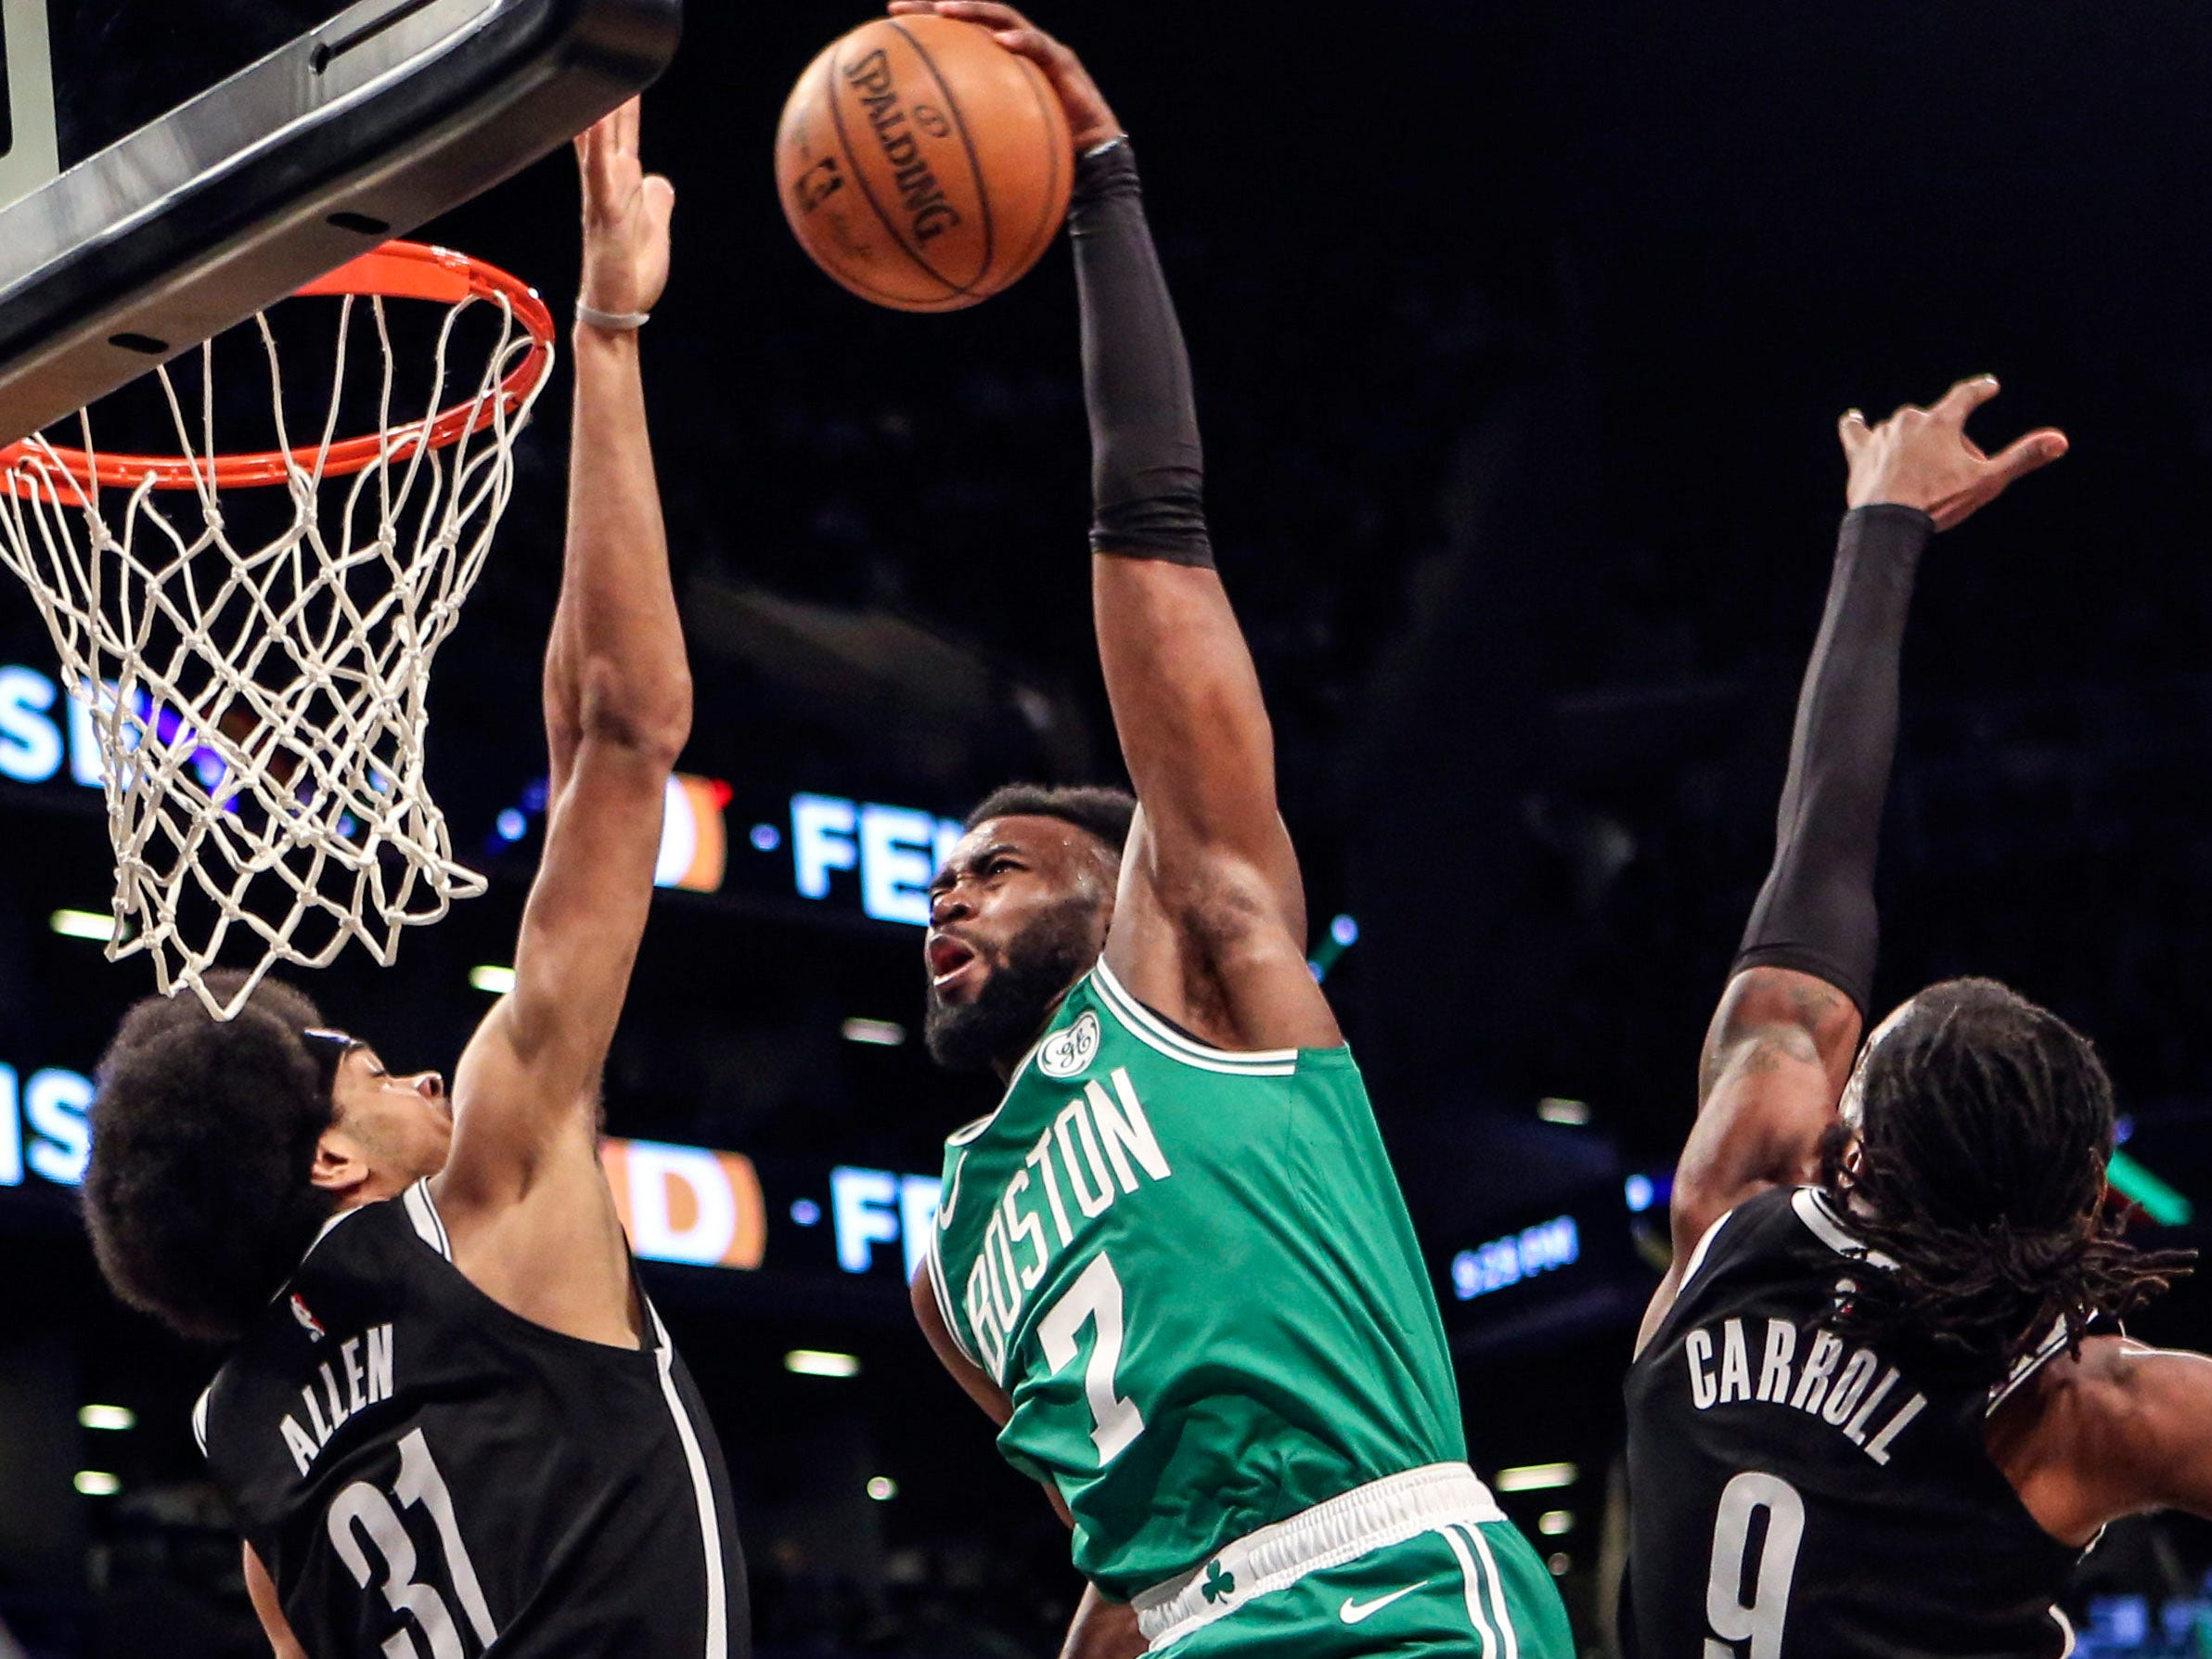 Jan. 14: Celtics forward Jaylen Brown (7) throws down a thunderous one-handed jam between a pair of Nets defenders.